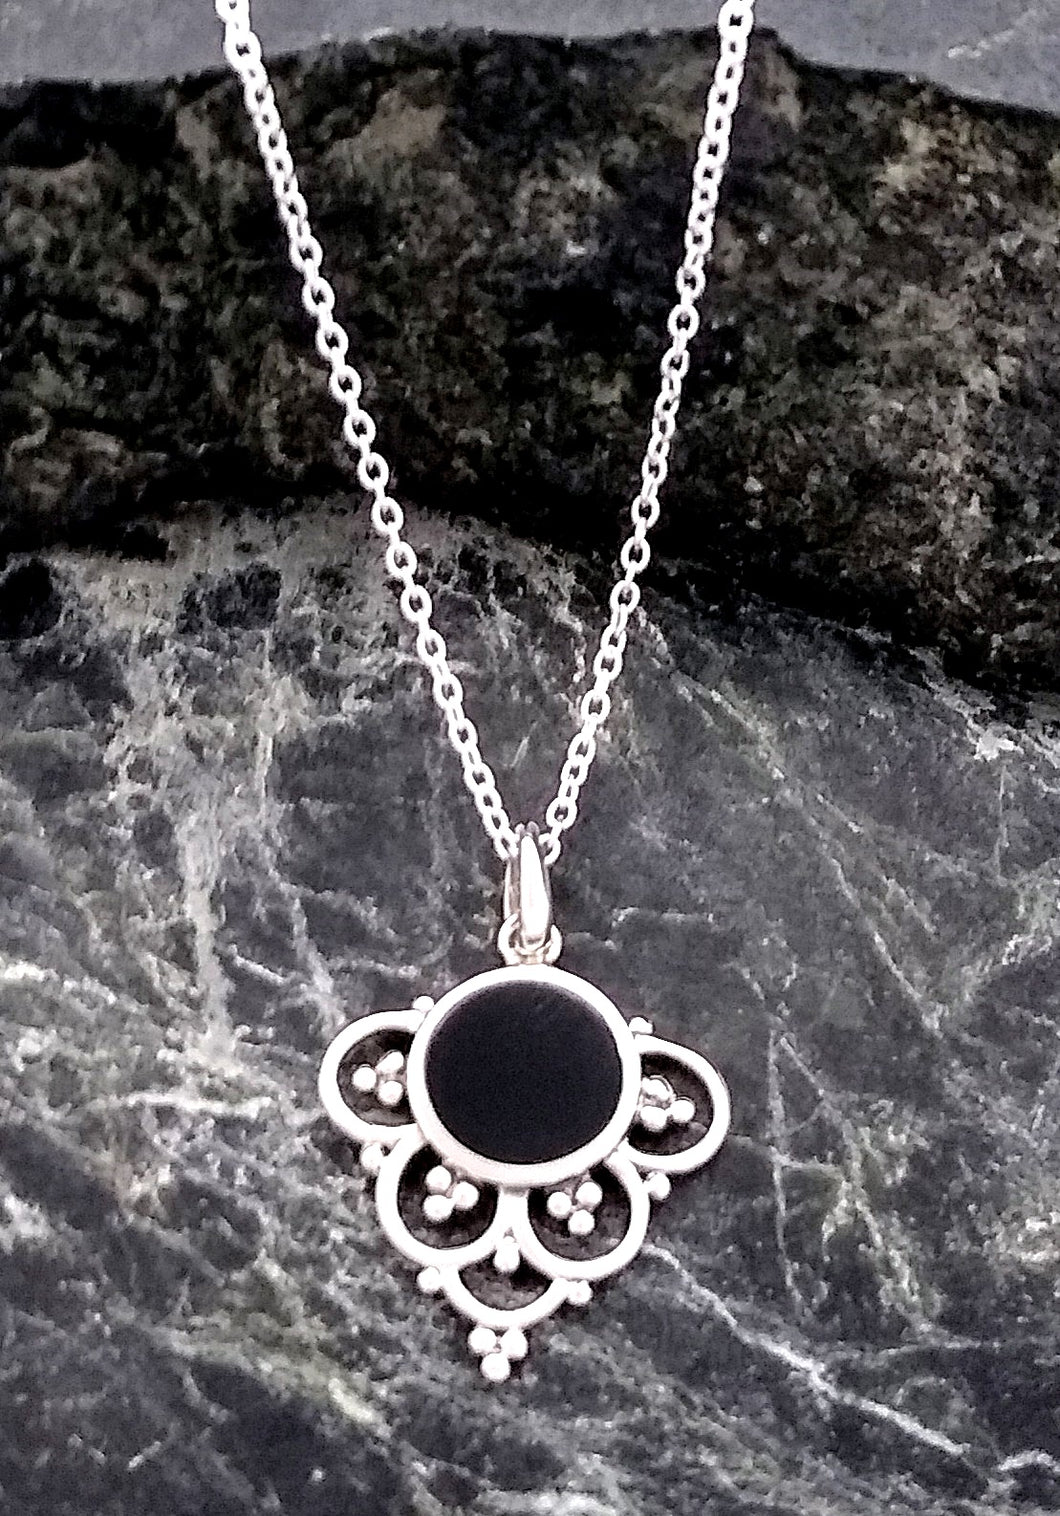 circular onyx pendant with 4 circles and a semi circle forming an arch around it's bottom half with small spheres to accent inside the circles.